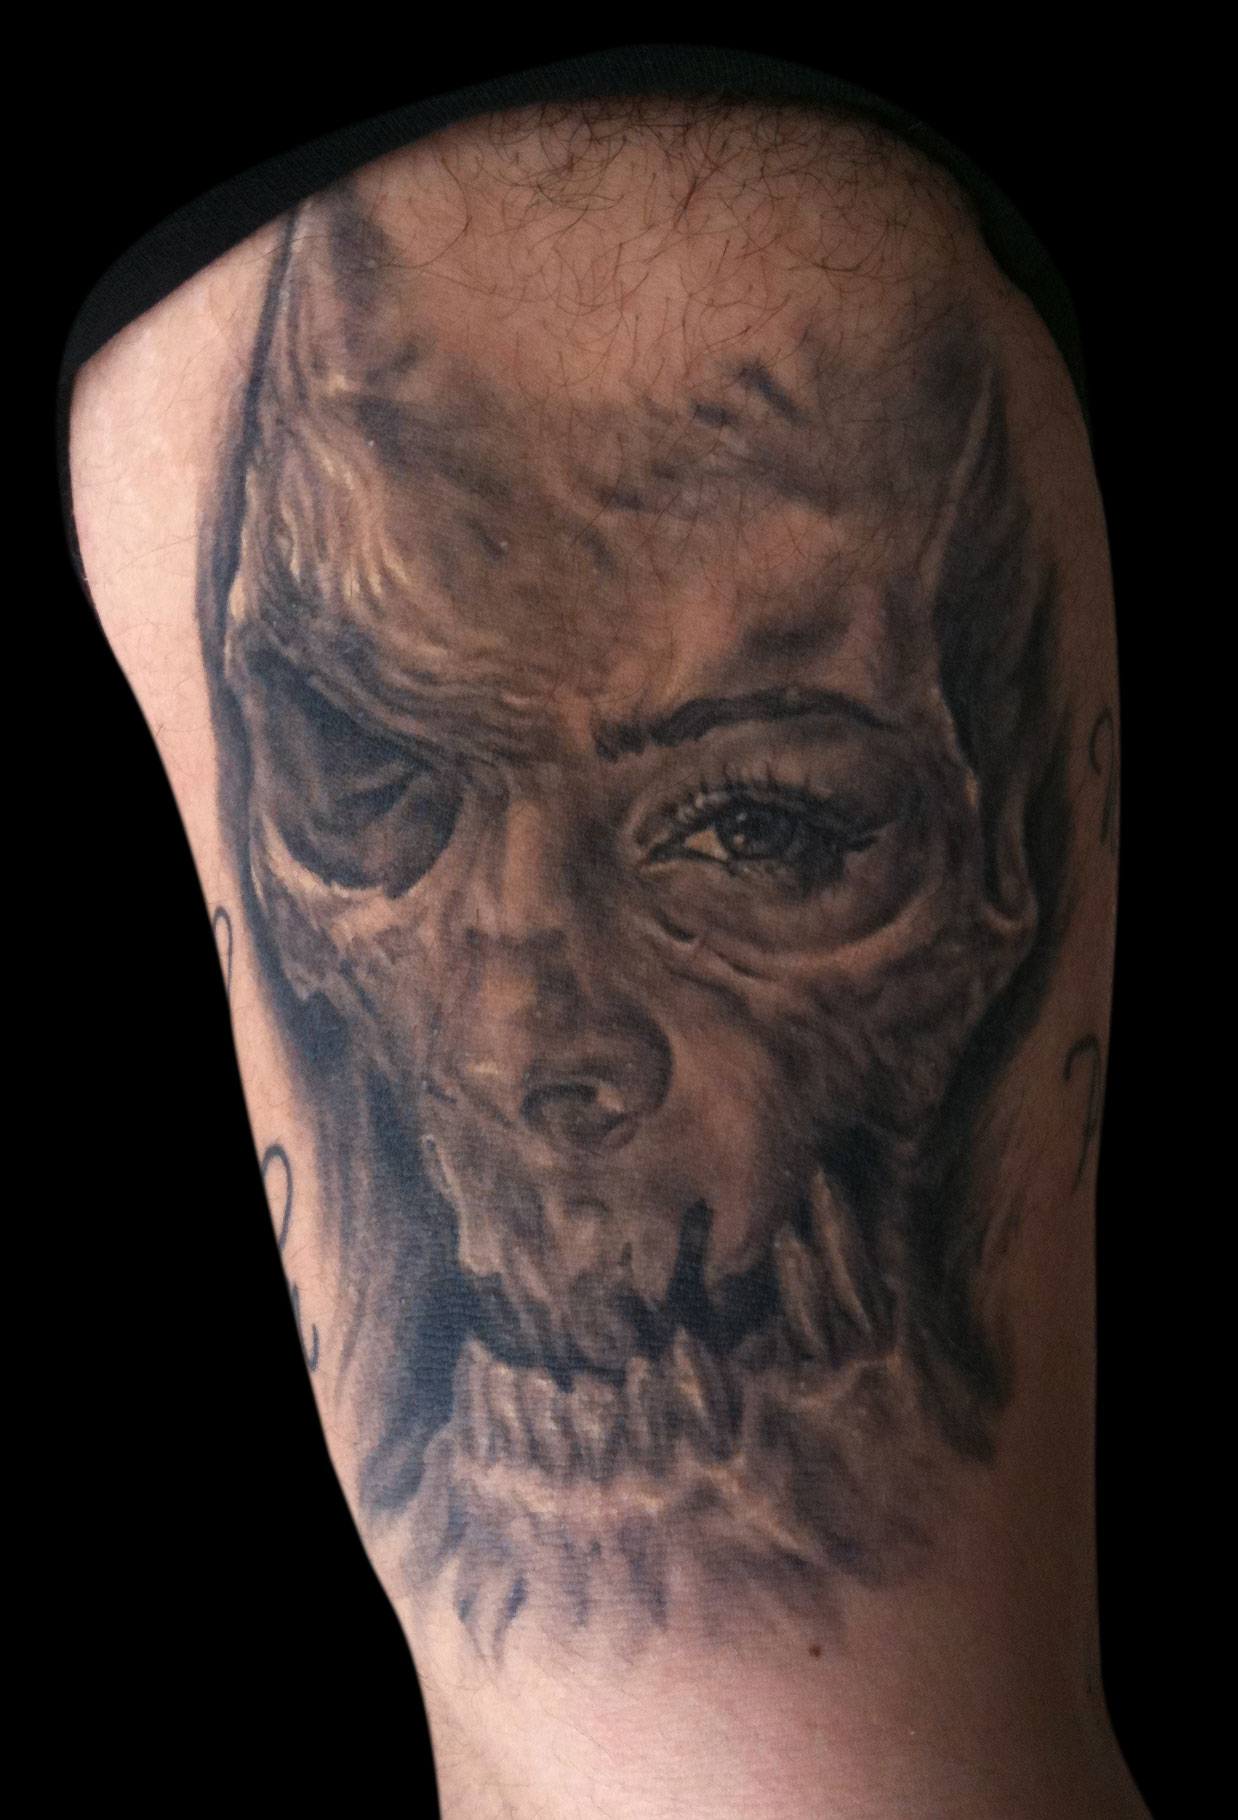 Black and Grey Skull/Woman Face Tattoo 1, (healed)